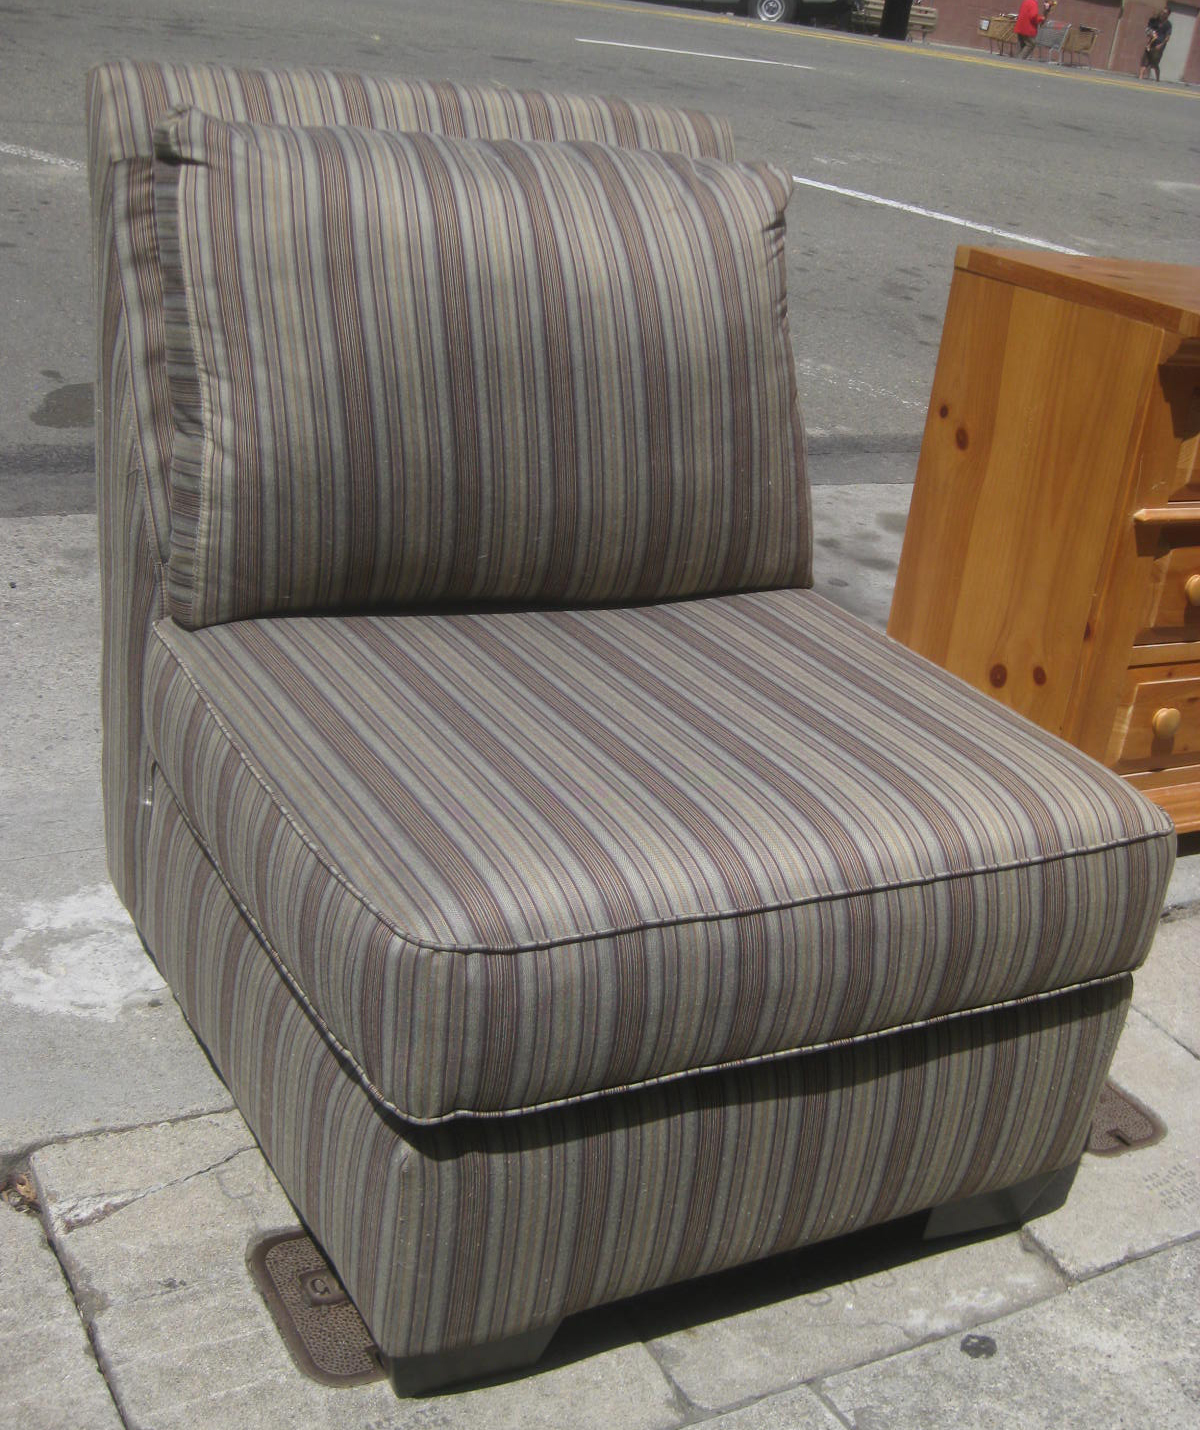 UHURU FURNITURE & COLLECTIBLES: SOLD - Armless Upholstered ...